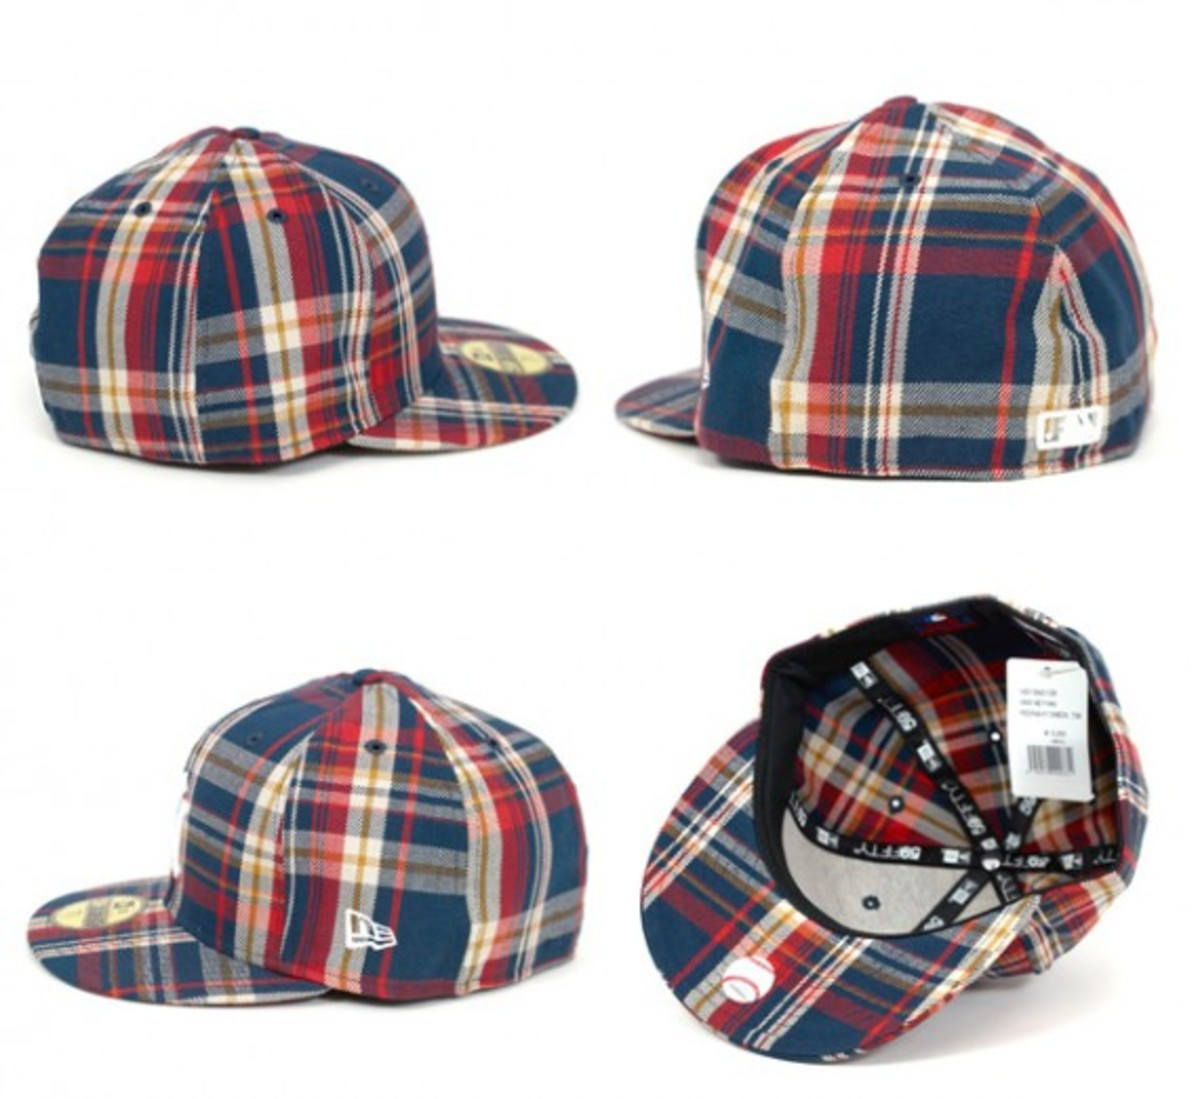 new-era-new-york-yankees-59fifty-fitted-caps-tartan-check-pack-02